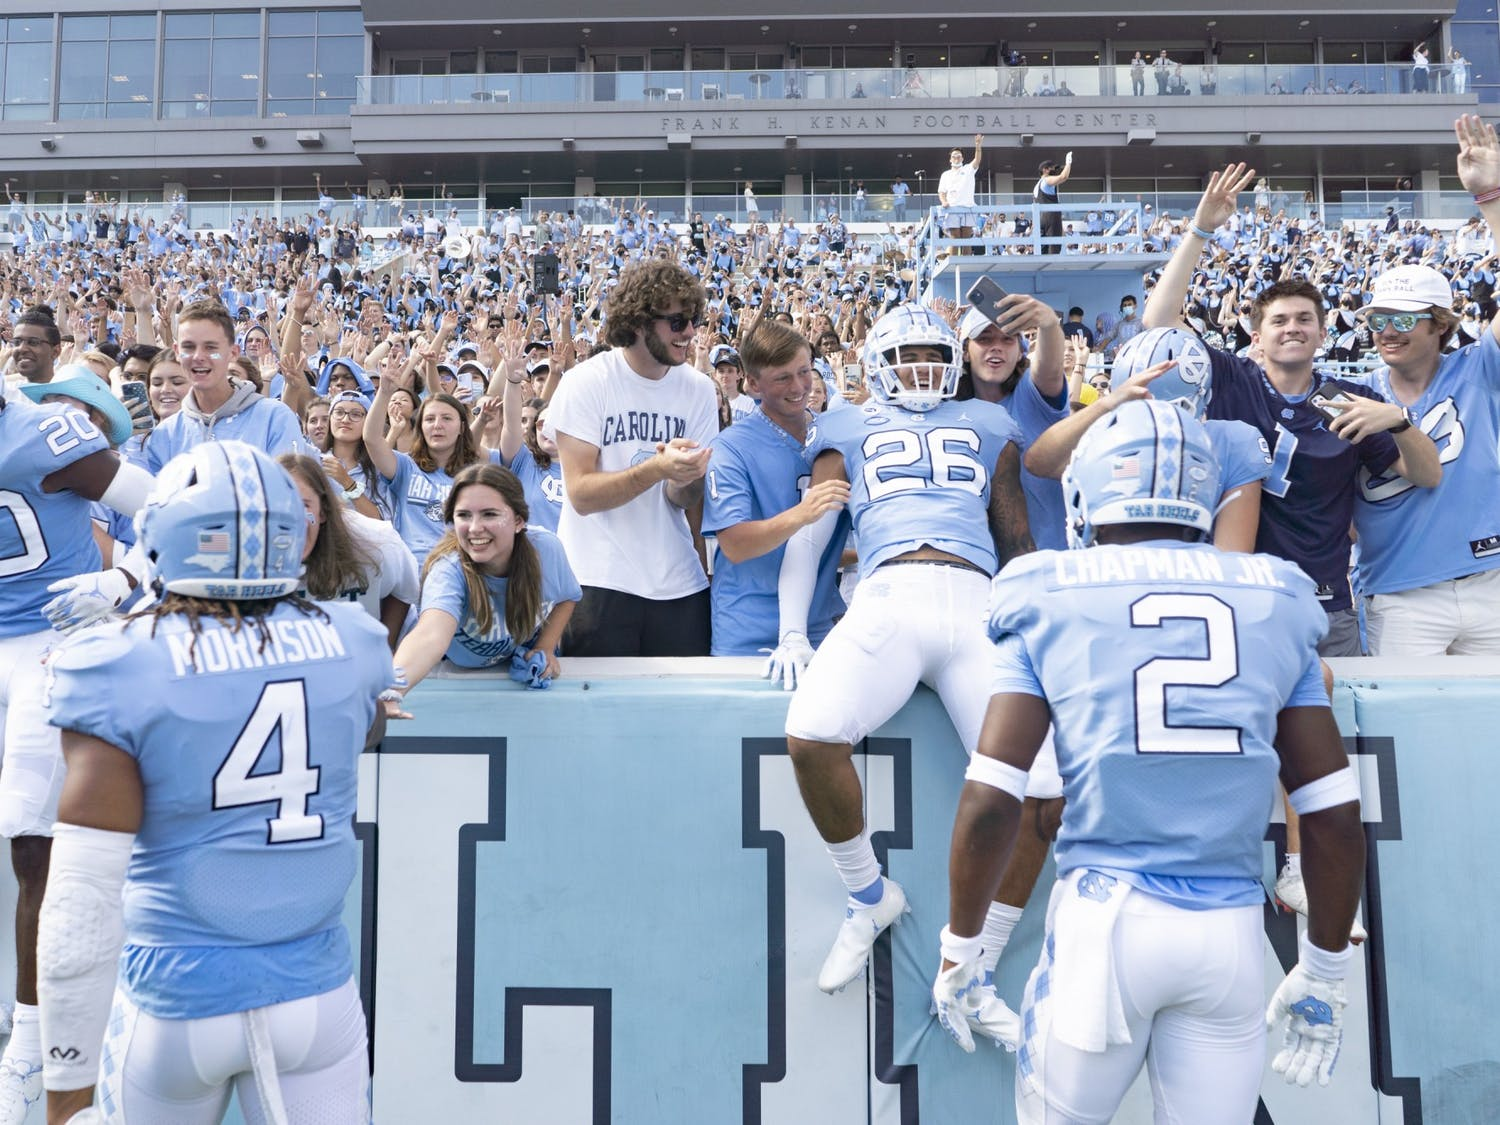 Fans meet and celebrate with UNC football players during the game against Duke in Kenan Memorial Stadium on Oct. 2, 2021.